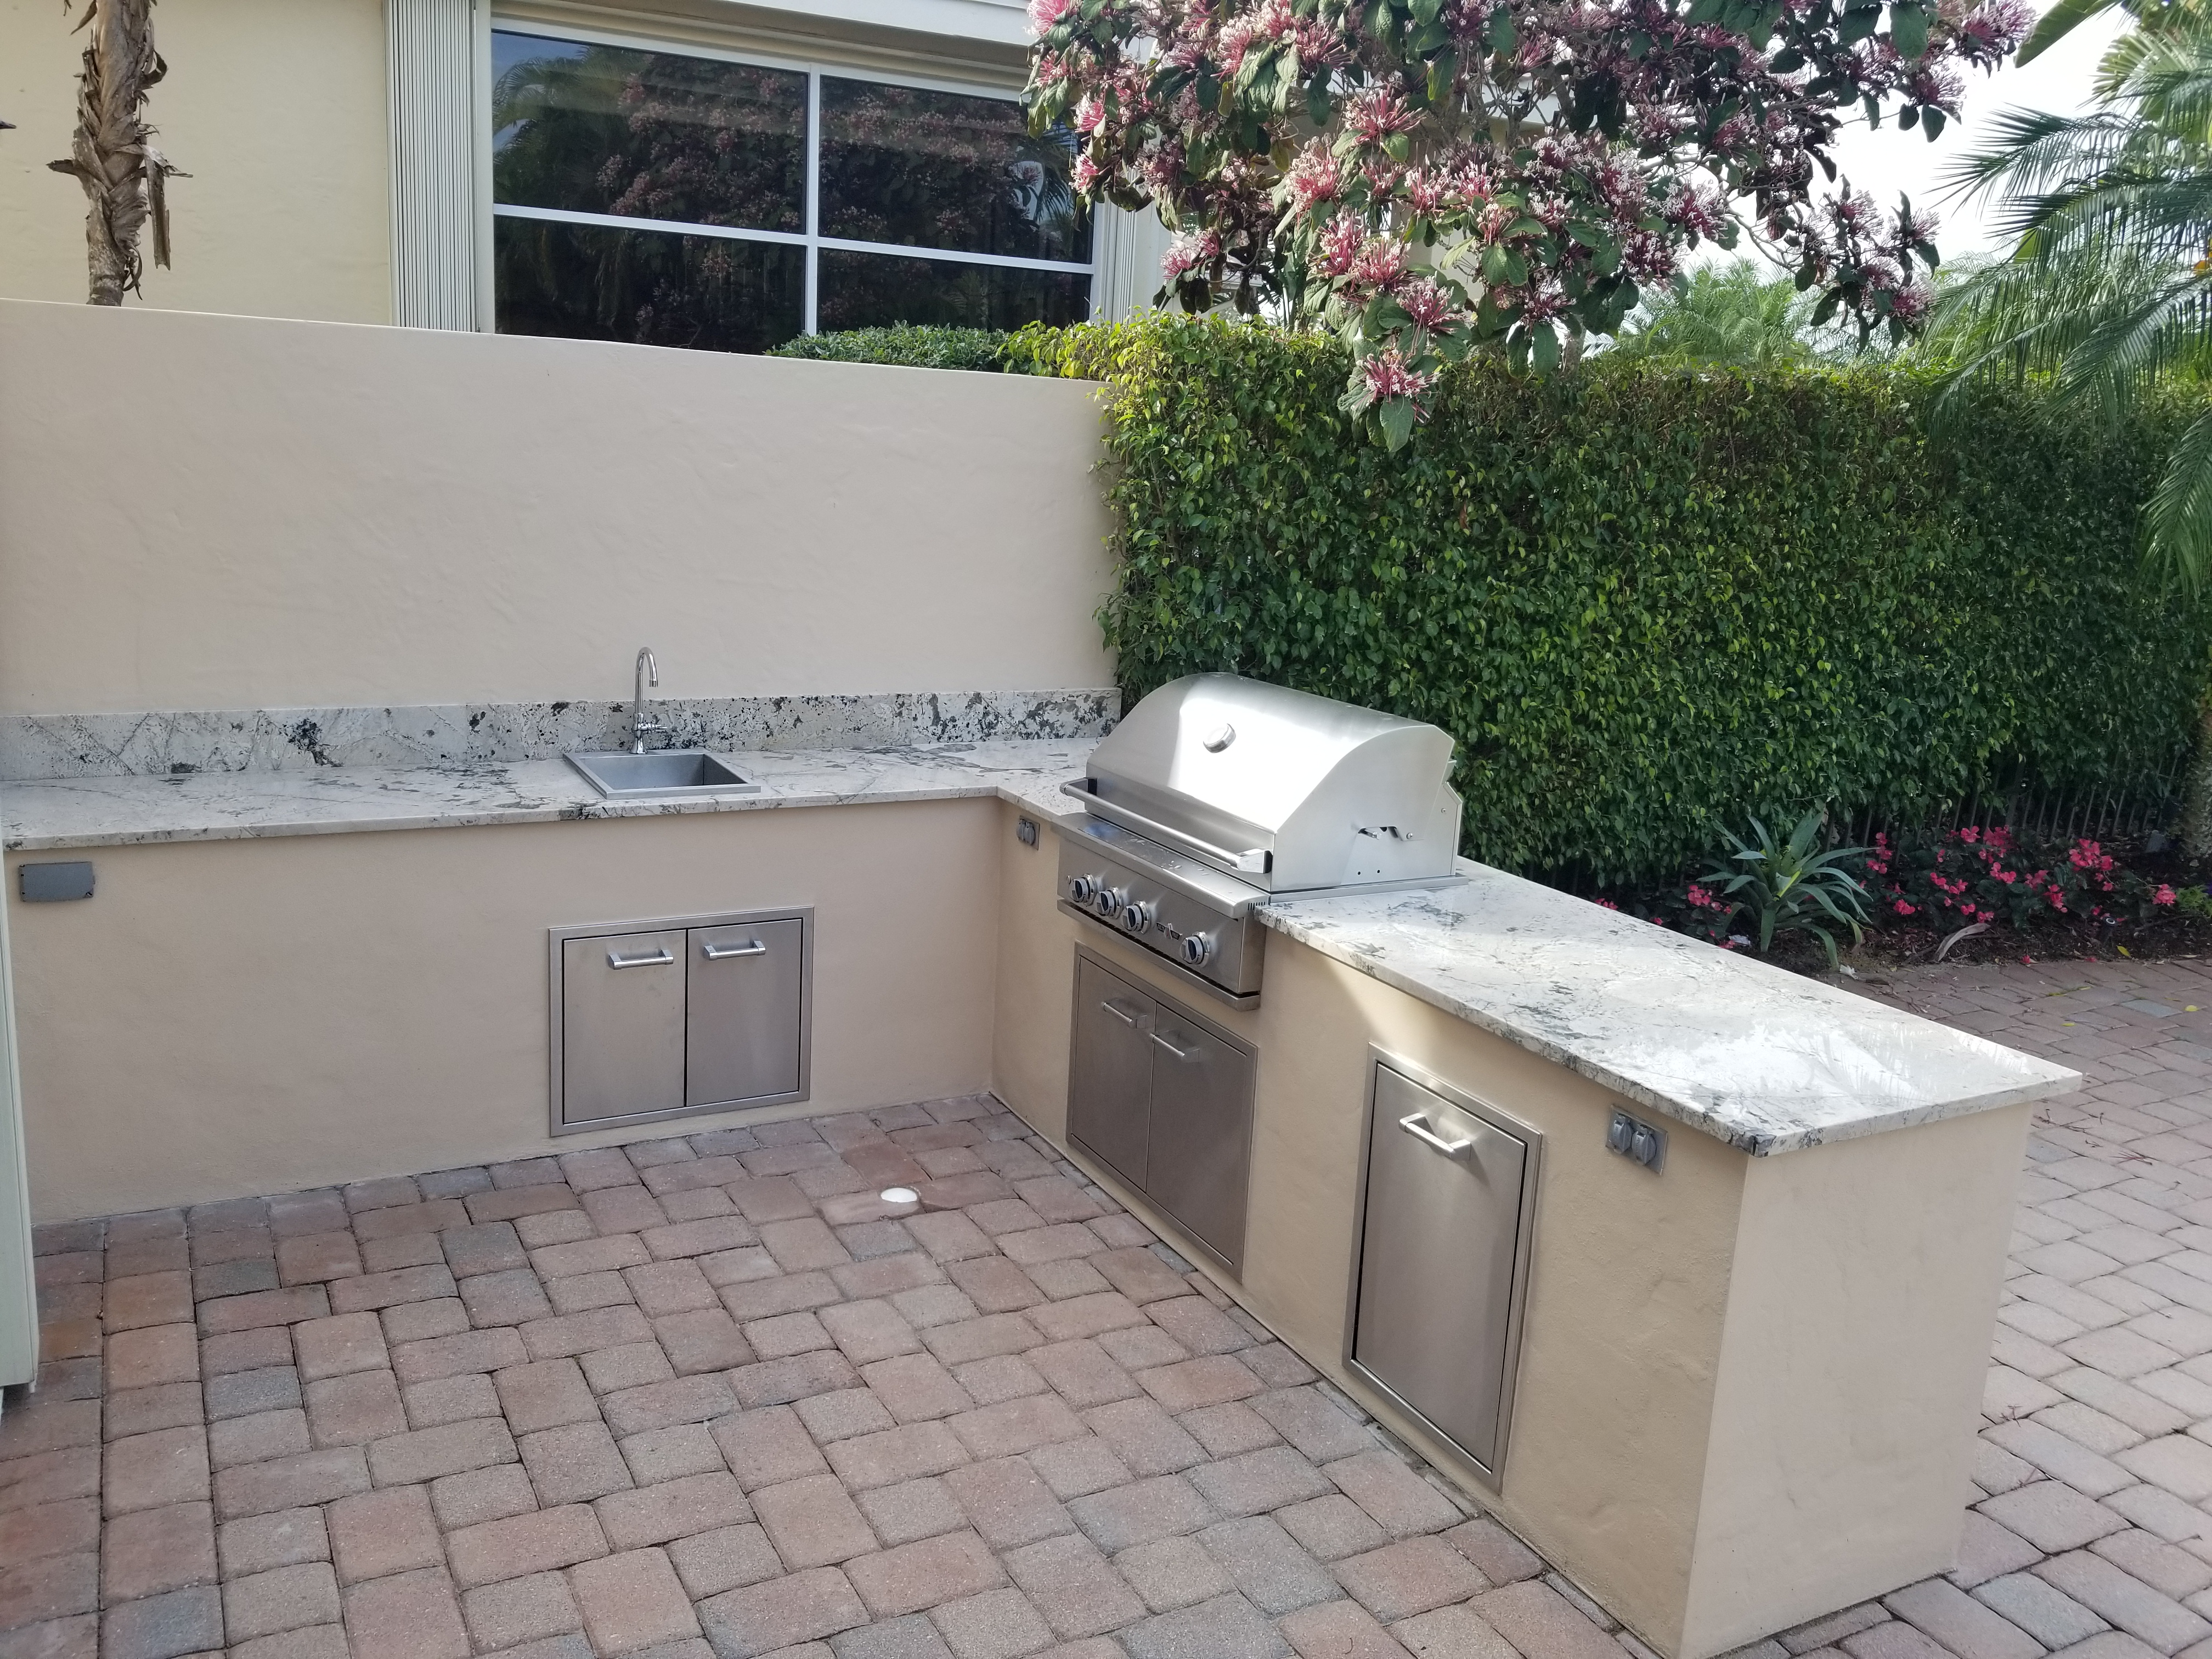 Exterior Cabinets for Grill, Coral Springs, FL